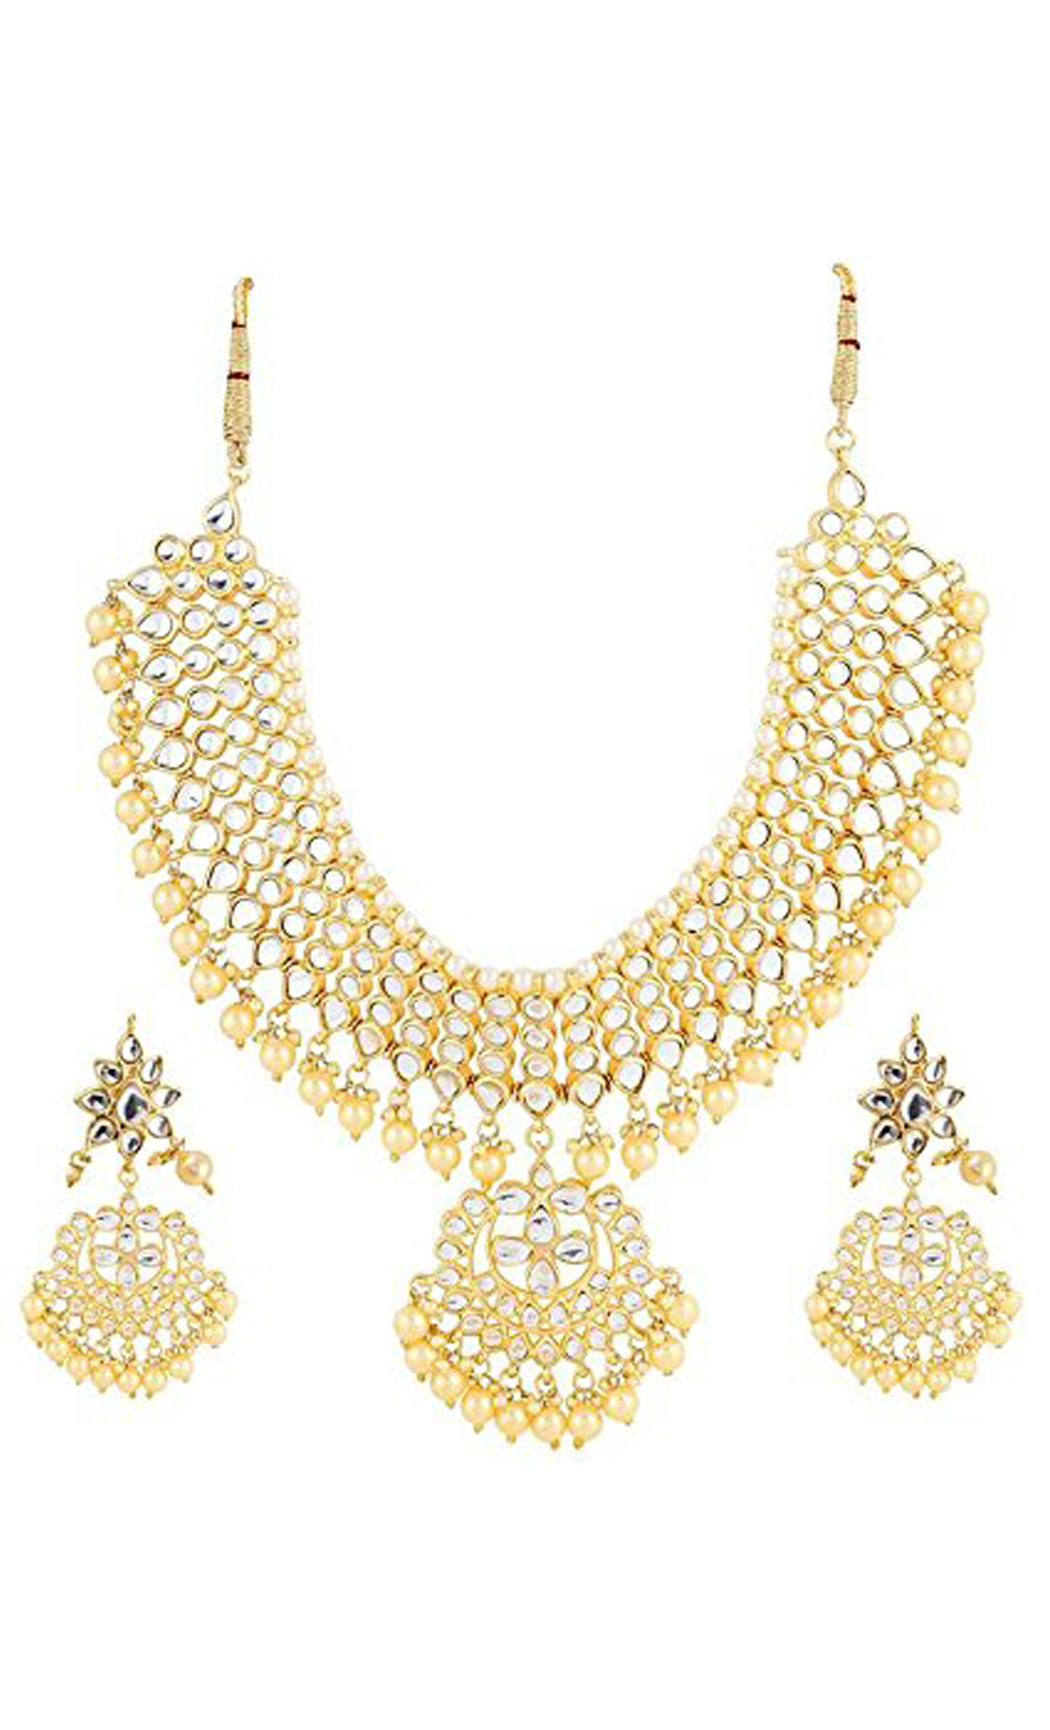 Kundan and Pearl Neckpiece and Earrings Set | Indian Bridal Jewellery Sets with Price | Buy Online